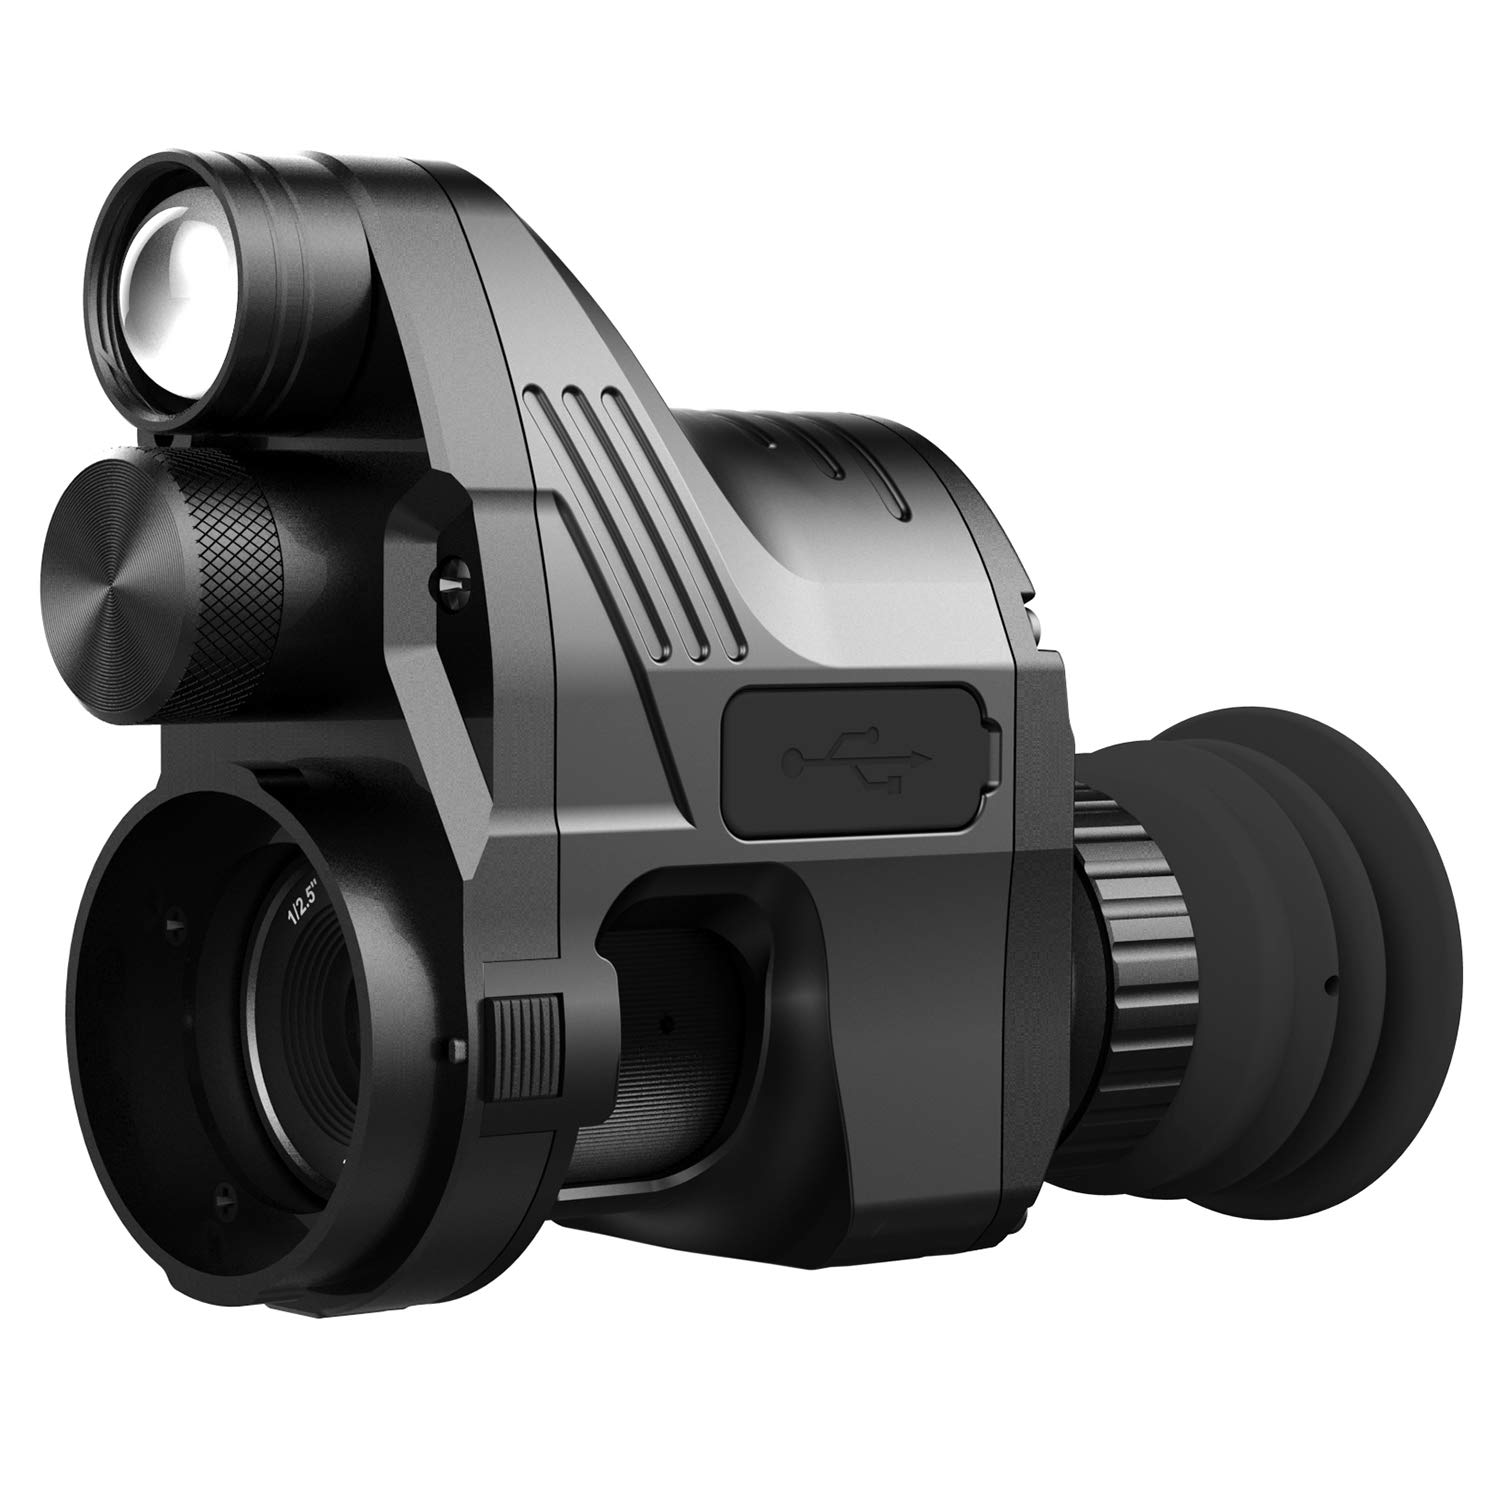 ohhunt Pard NV007 4X Sight Aiming Modified Infrared Monocular Night Vision Tactical Riflescope Cameras WiFi Day and Night Use Hunting,Hiking by ohhunt